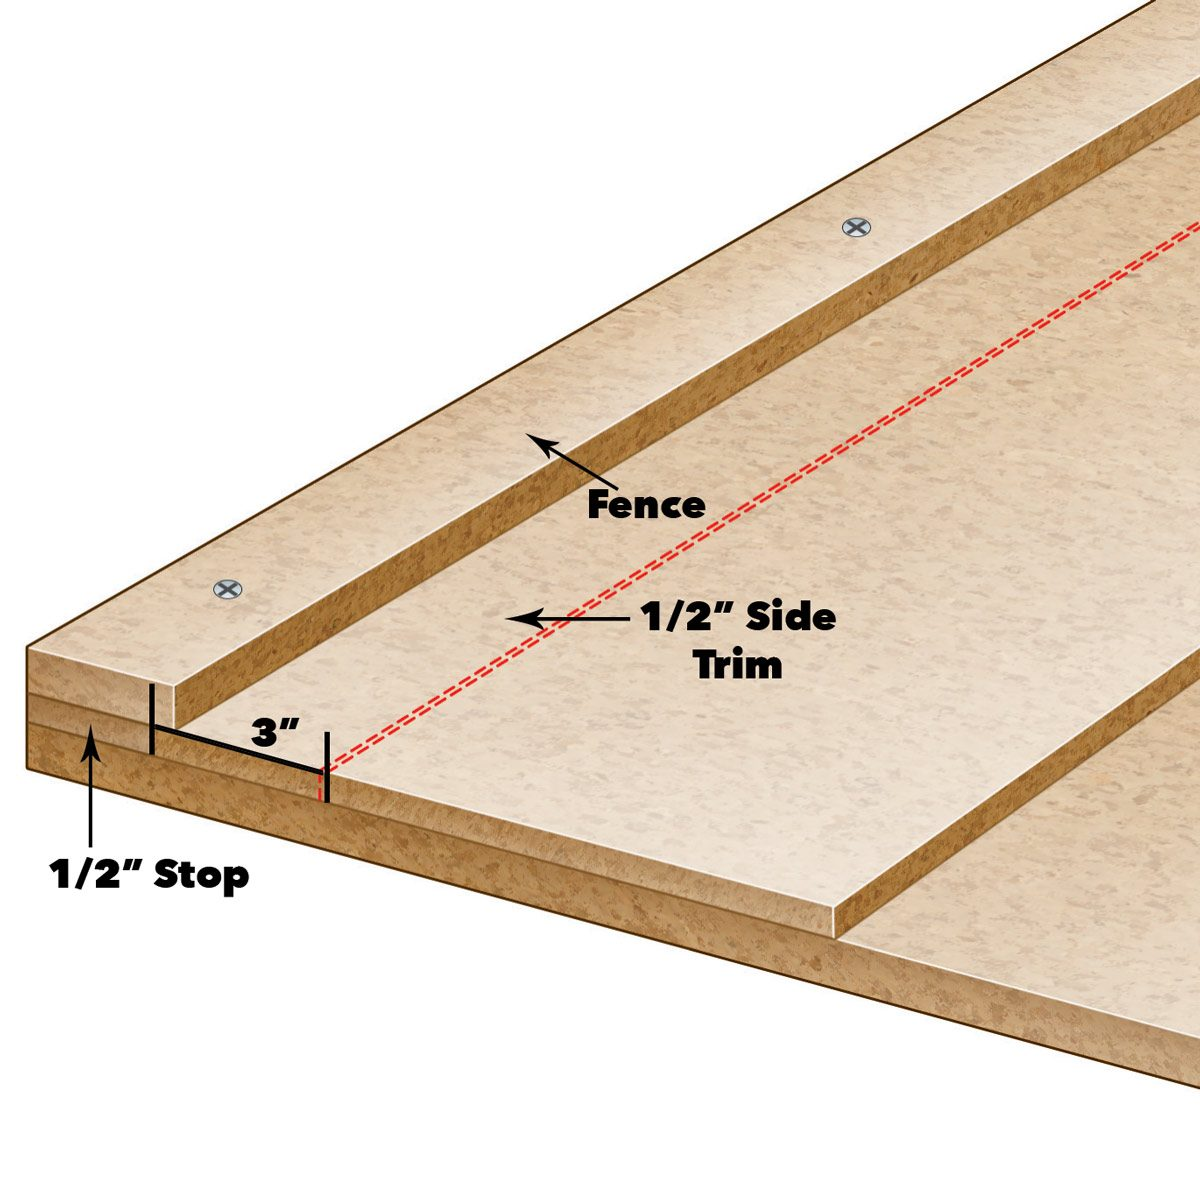 figure c side trim jig